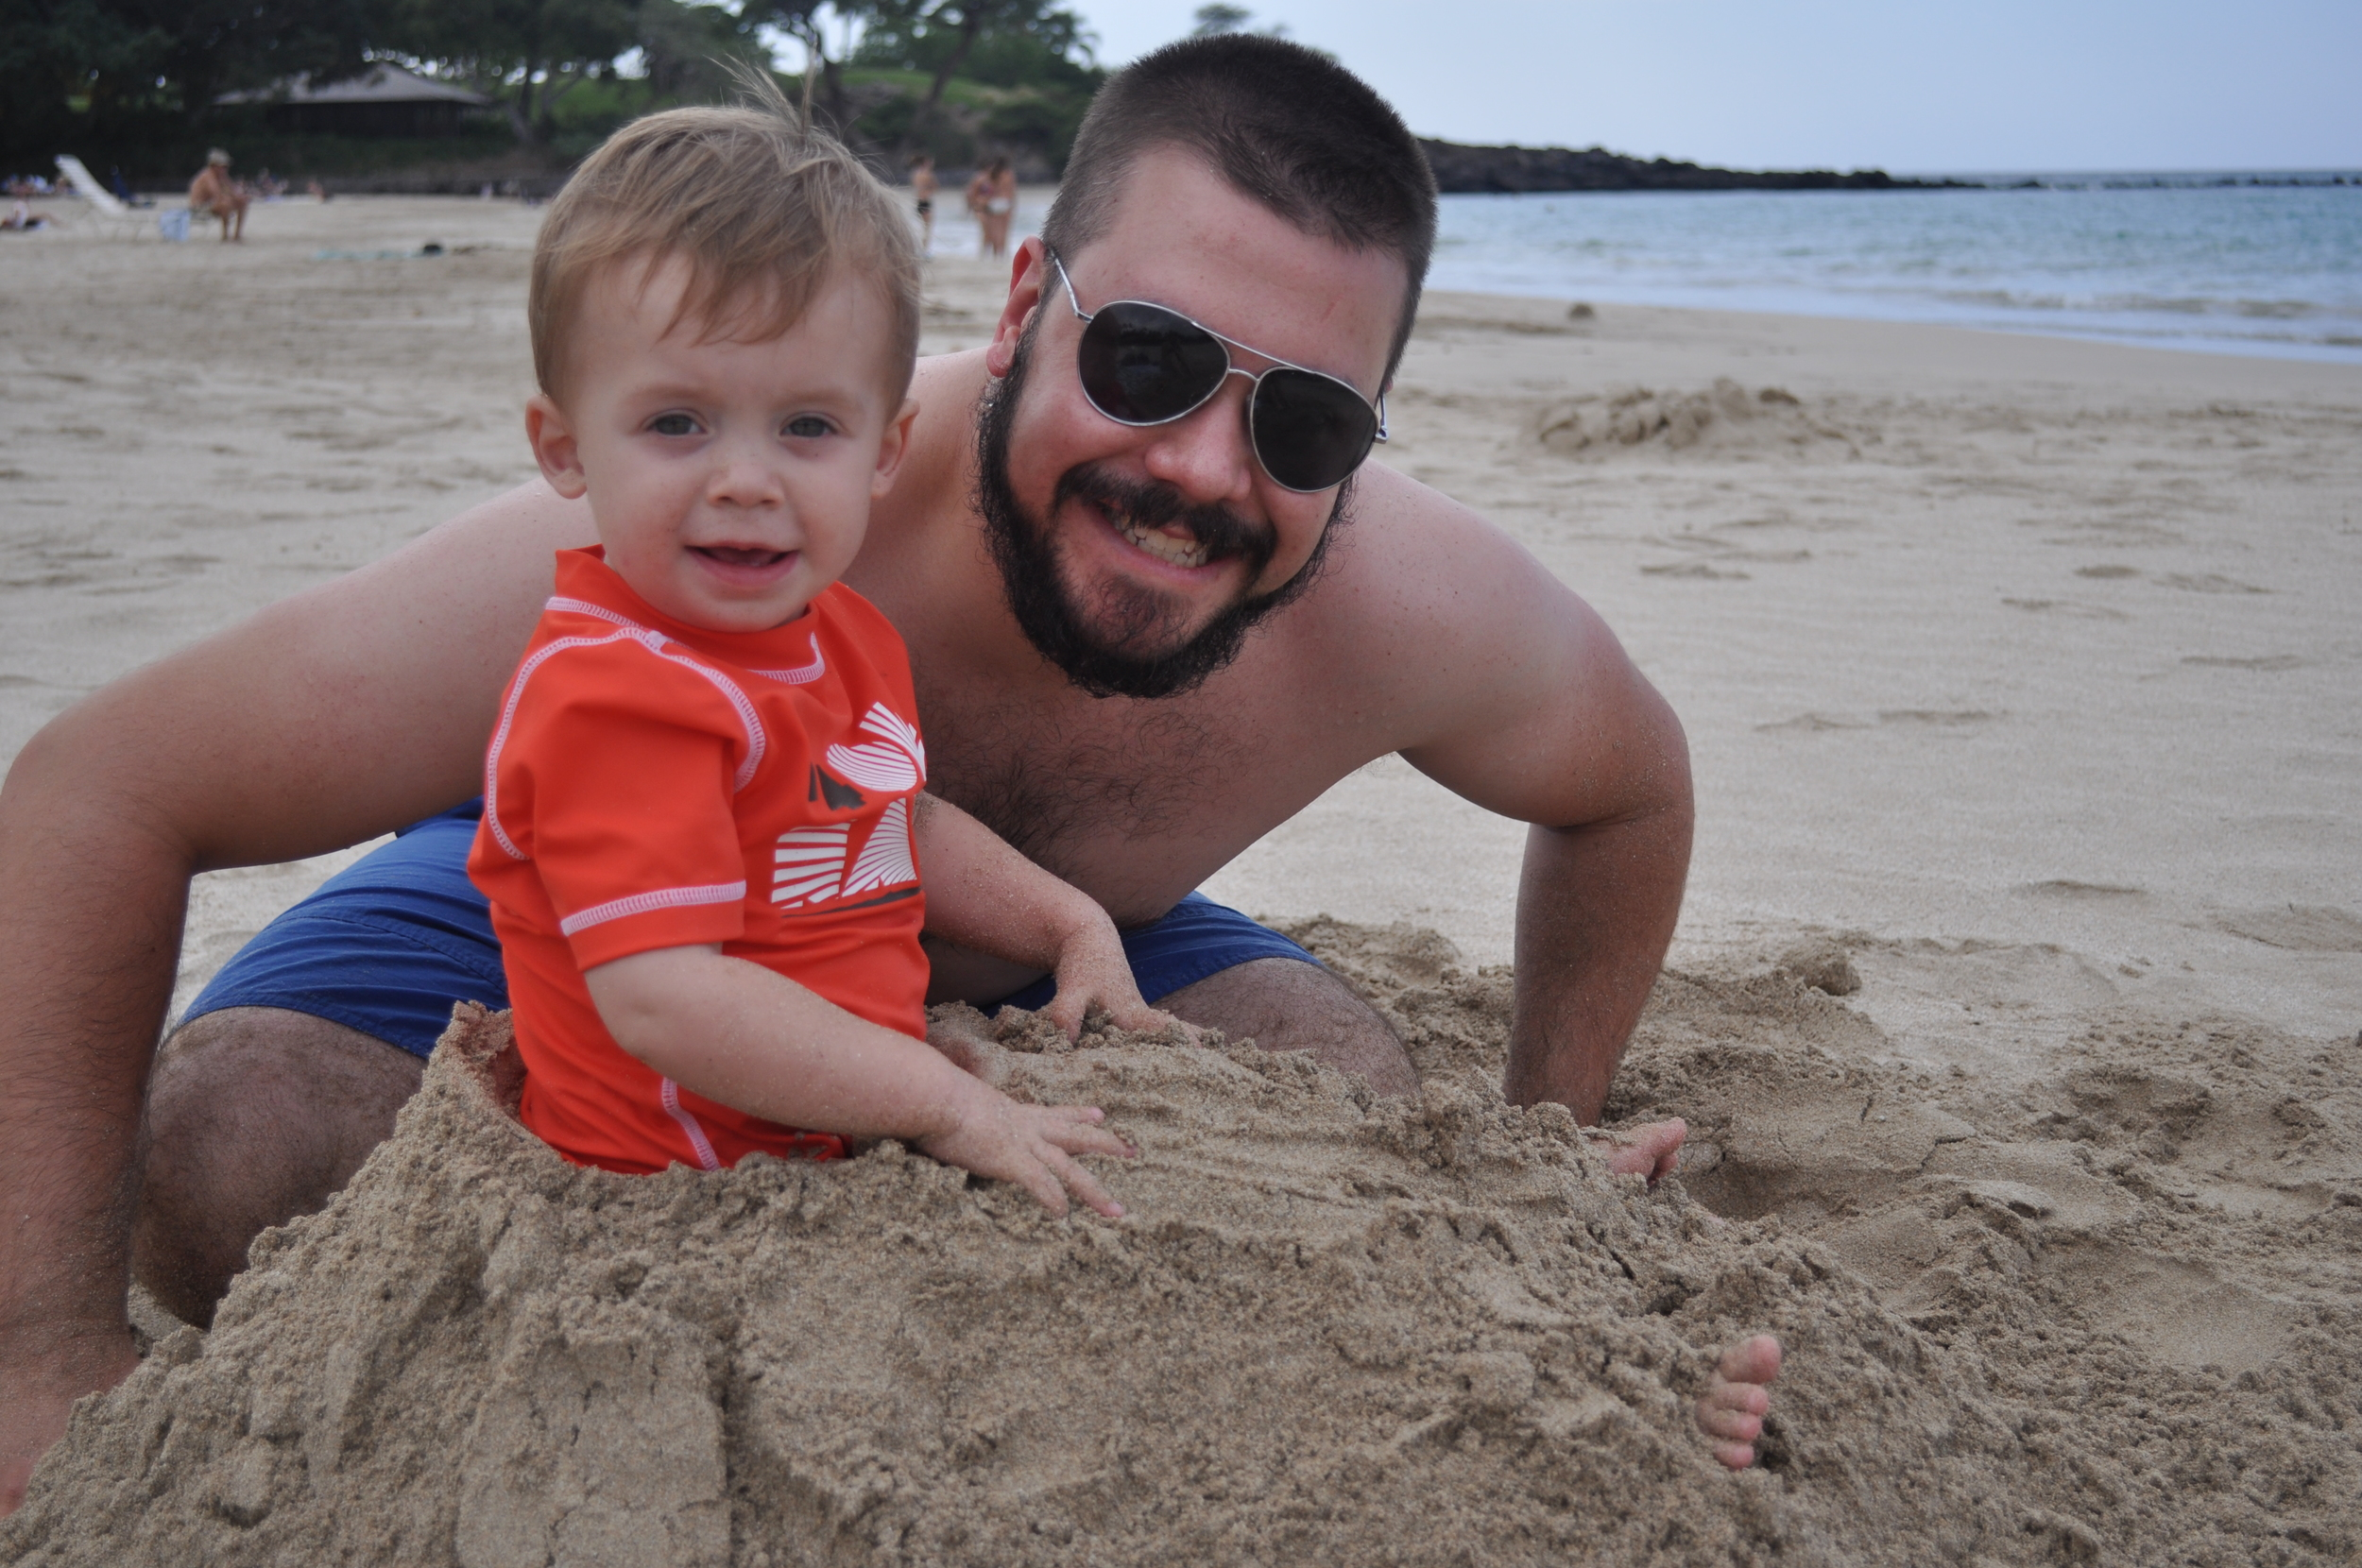 Daddy buried Ian in the sand!